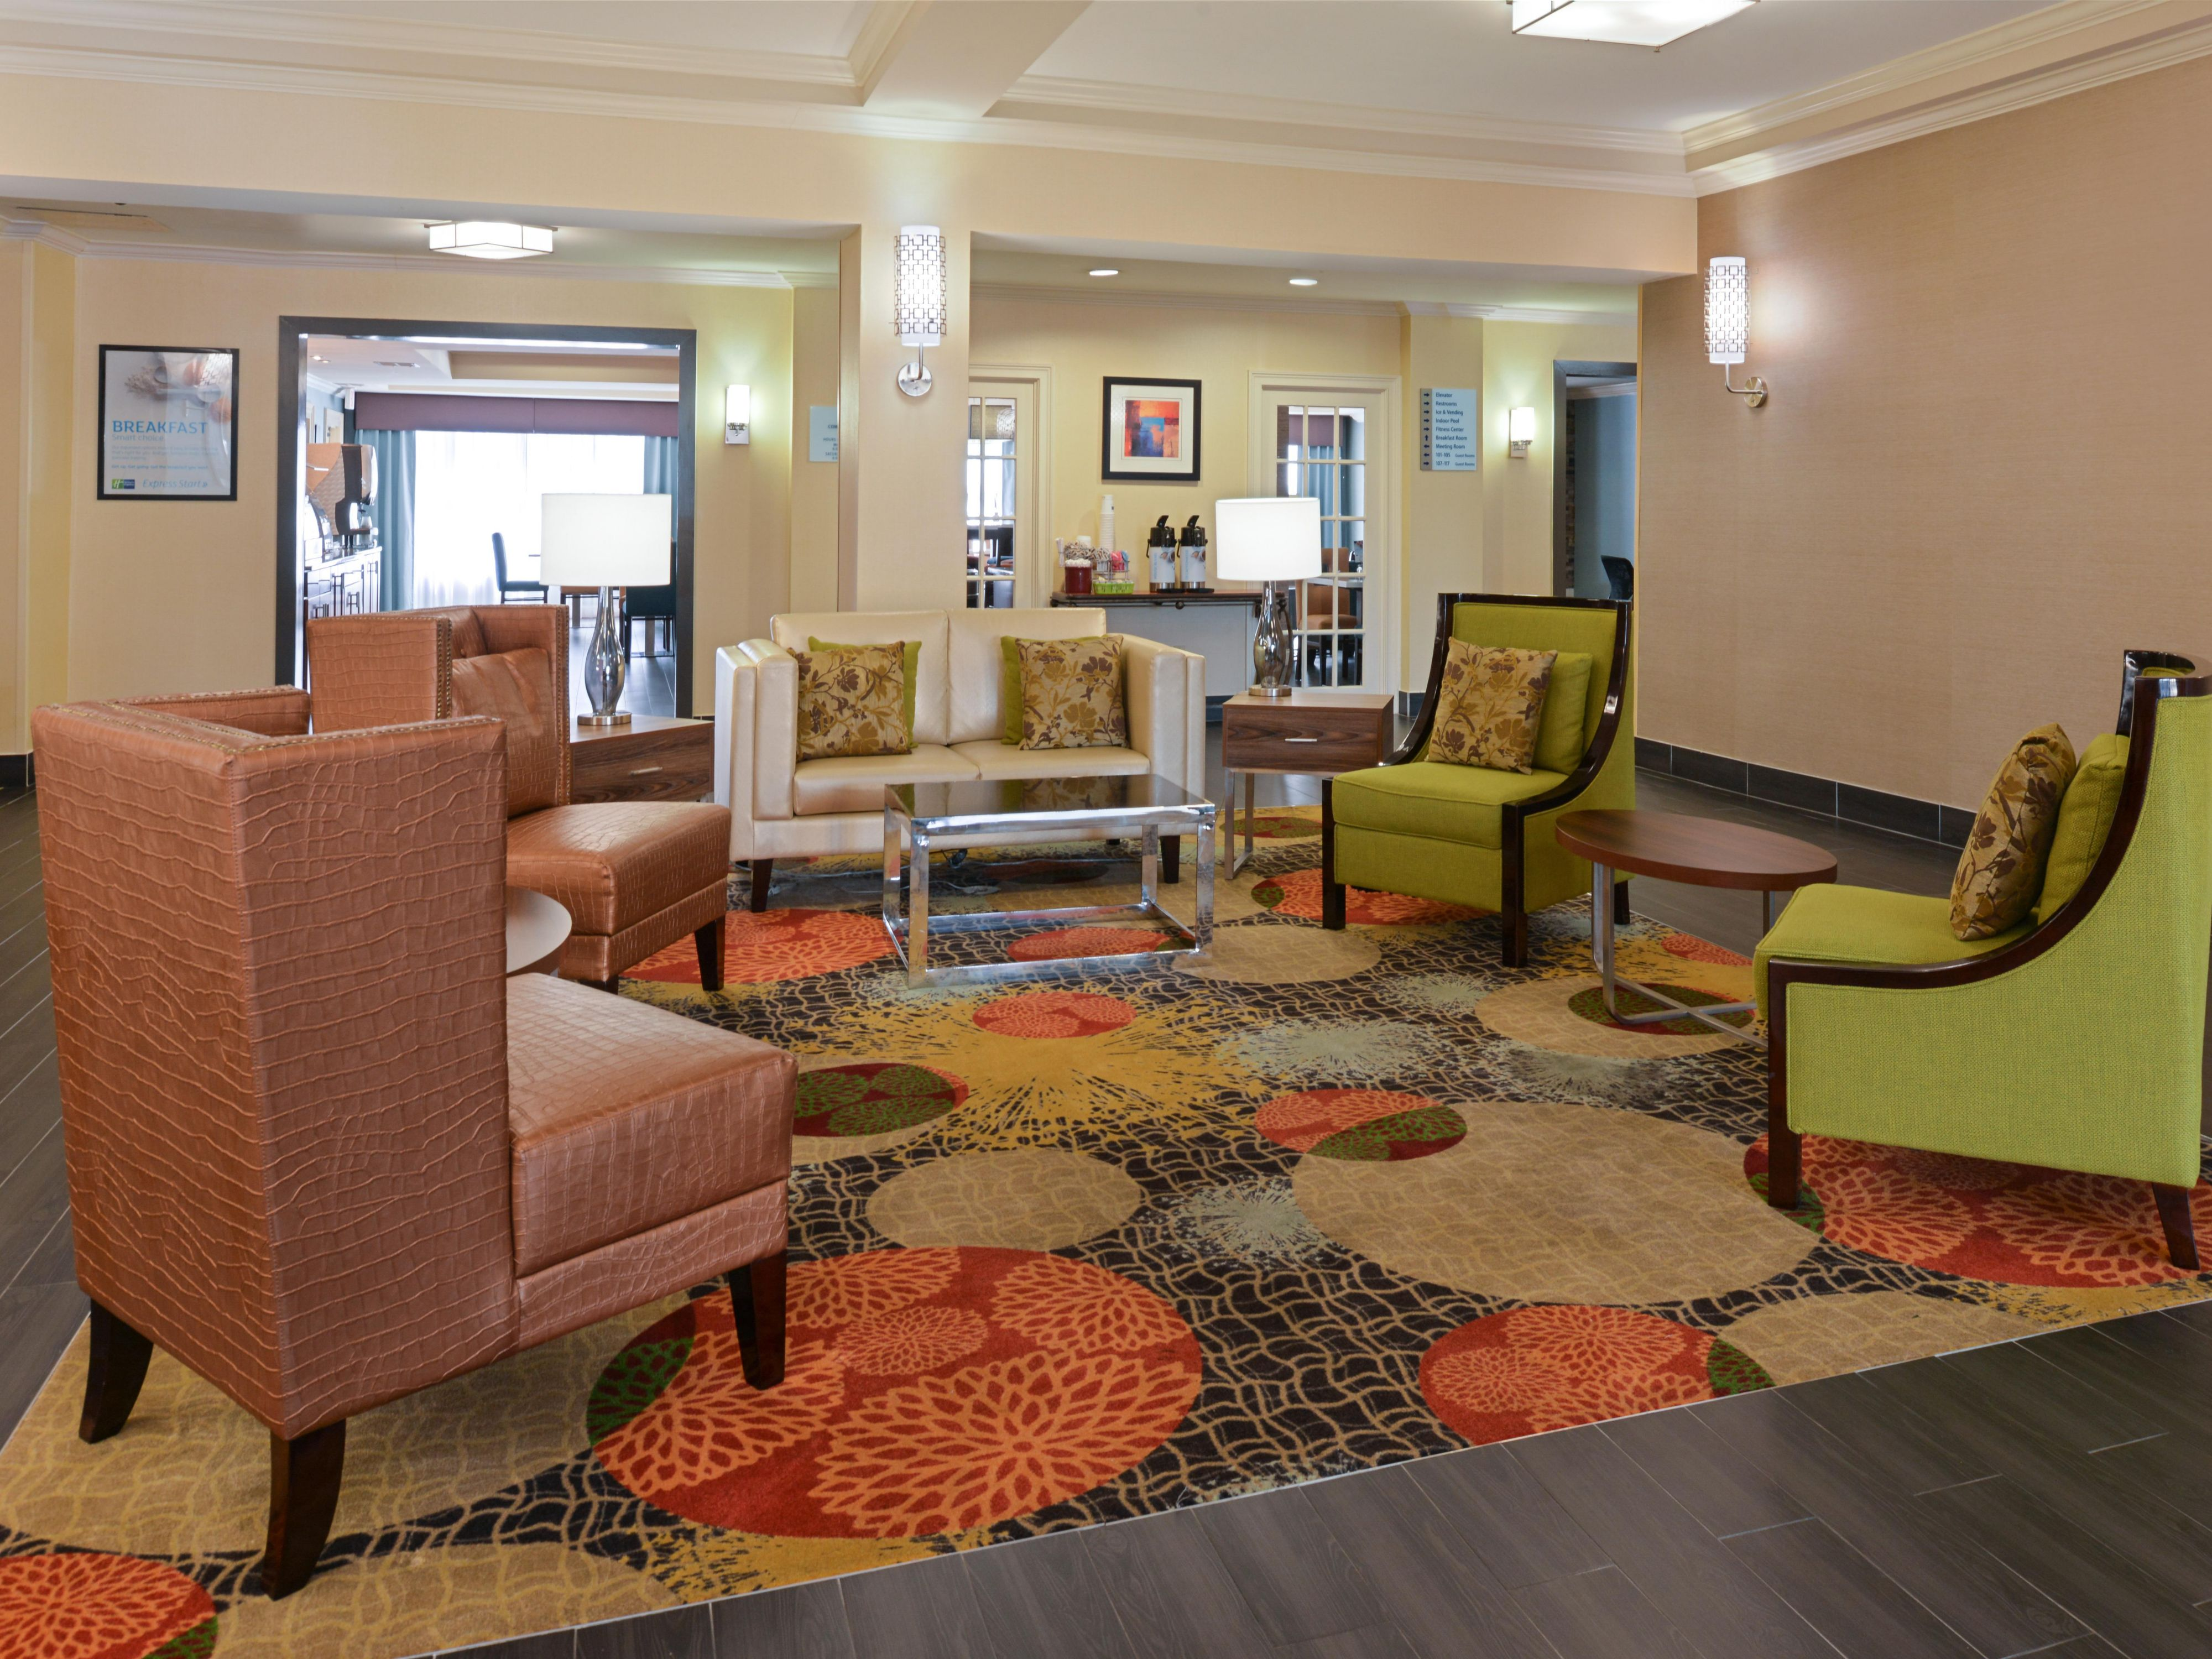 Relaxing Lobby at the Holiday Inn Express & Suites in Bessemer, Al